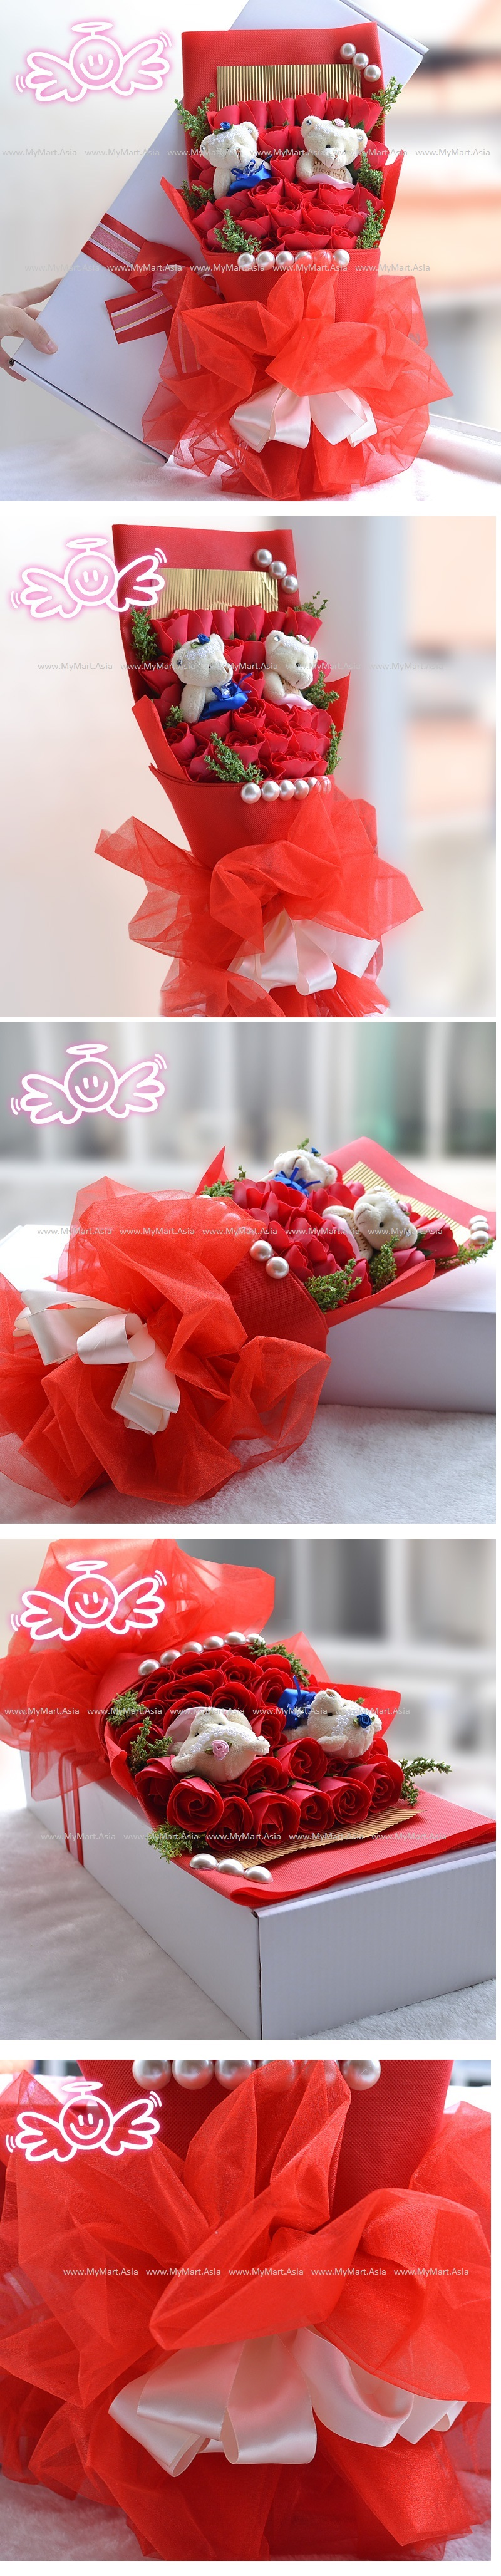 Valentines Romantic Gift 33 Rose with 2 Teddy Bear Bouquet RED